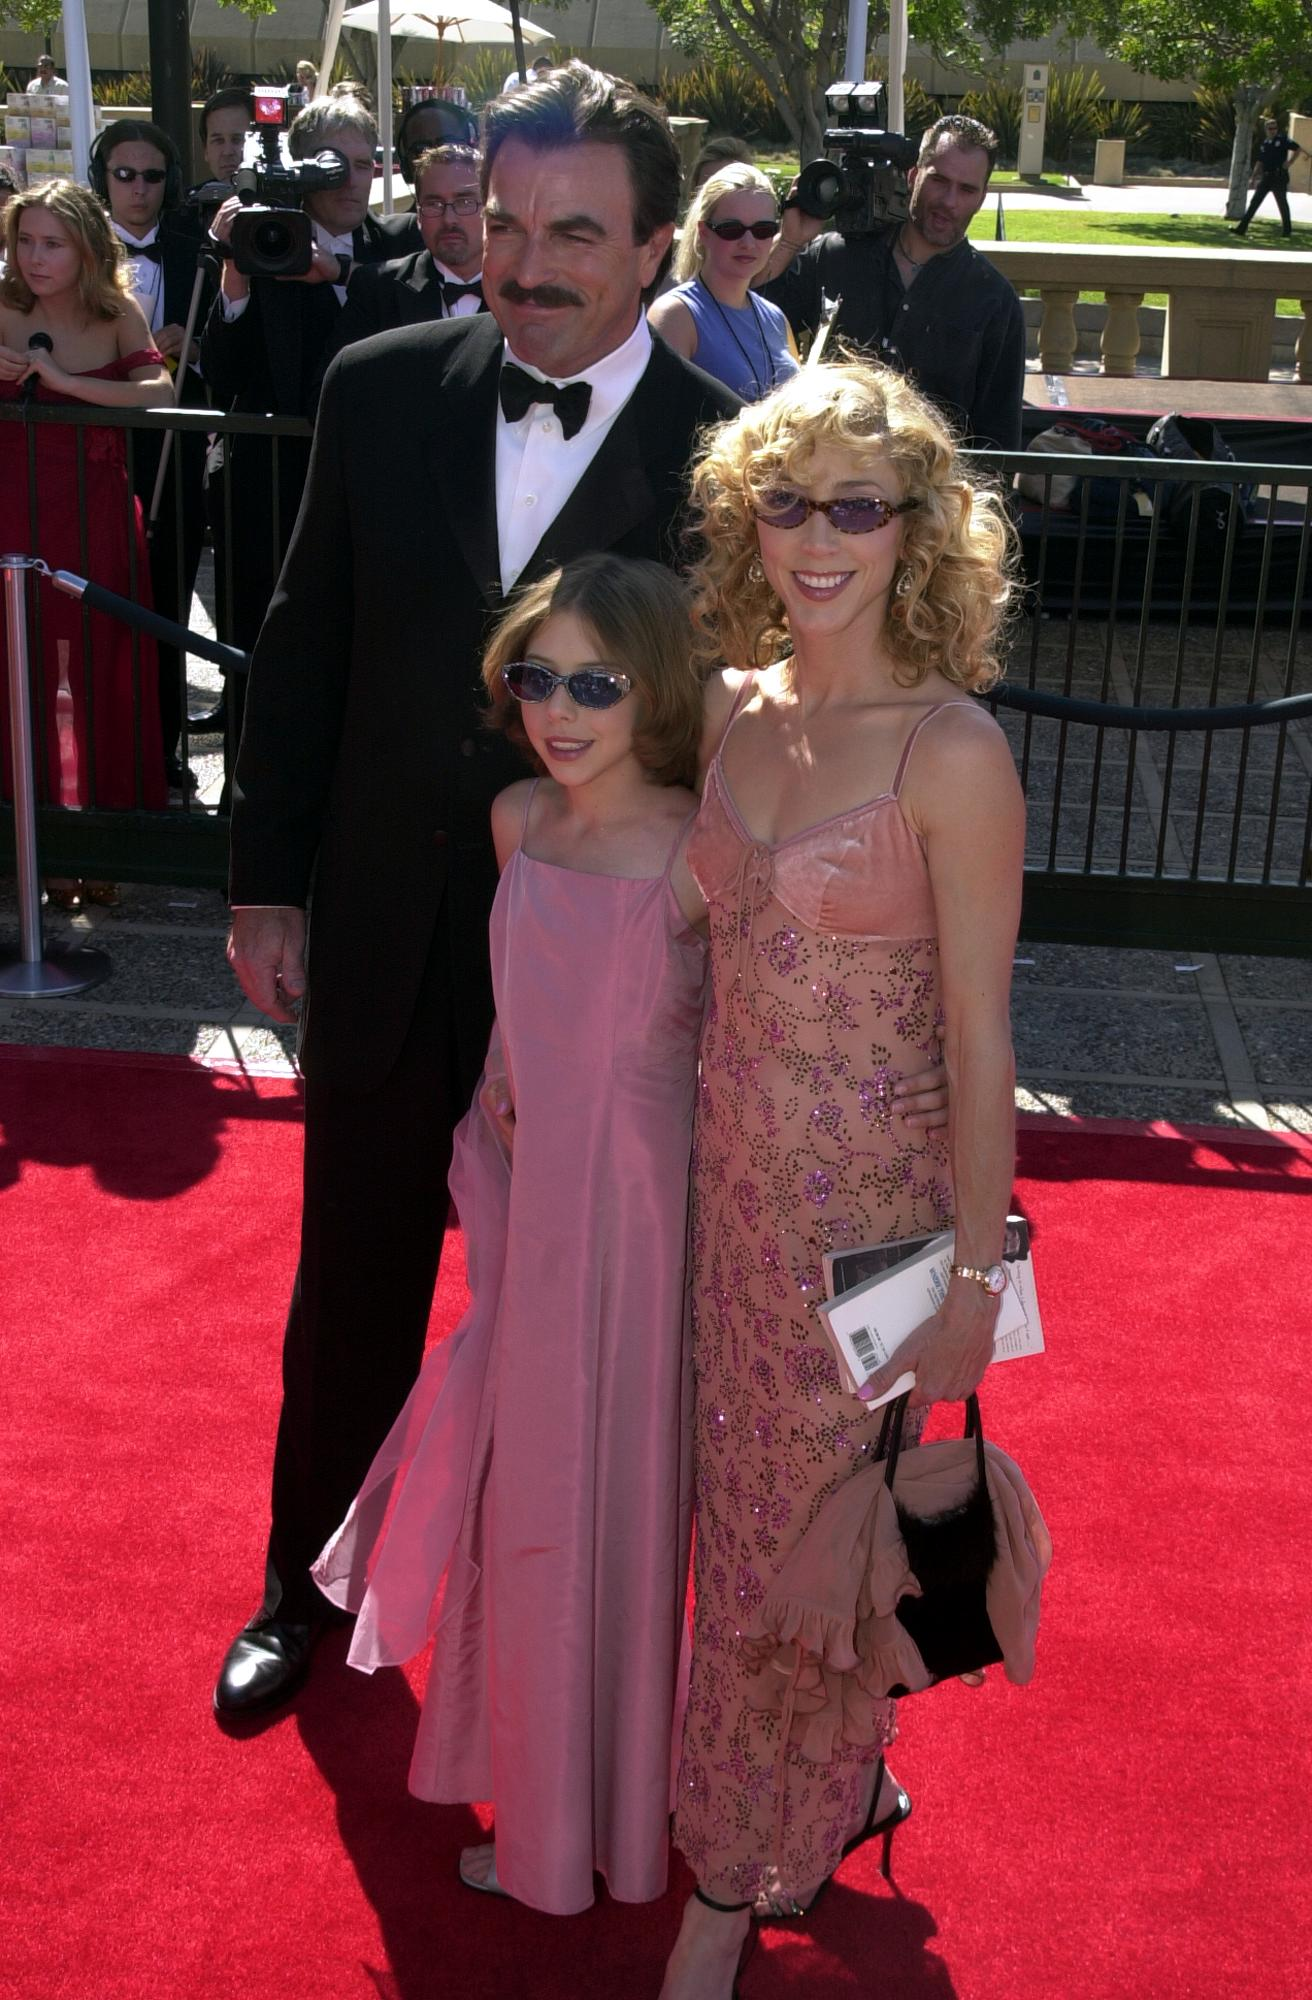 Image Credits: Getty Images / Ron Galella | The Selleck Family Attending the Creative Emmy Awards held at the Pasadena Civic Center in 2000.